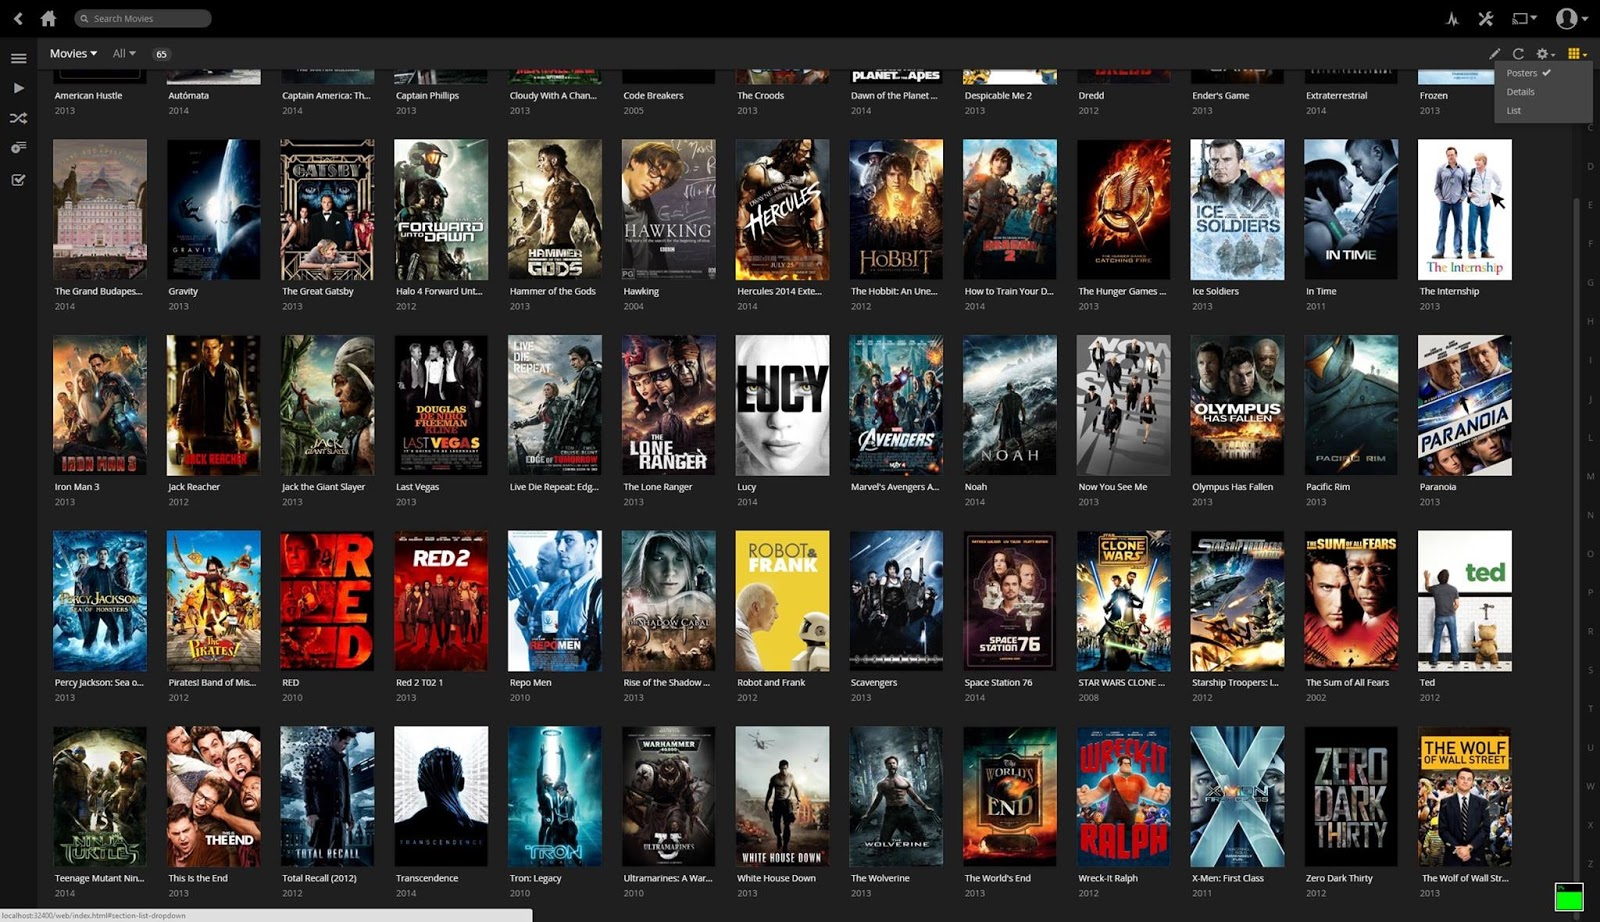 Stream DVD movies to Plex Media Server for storing and